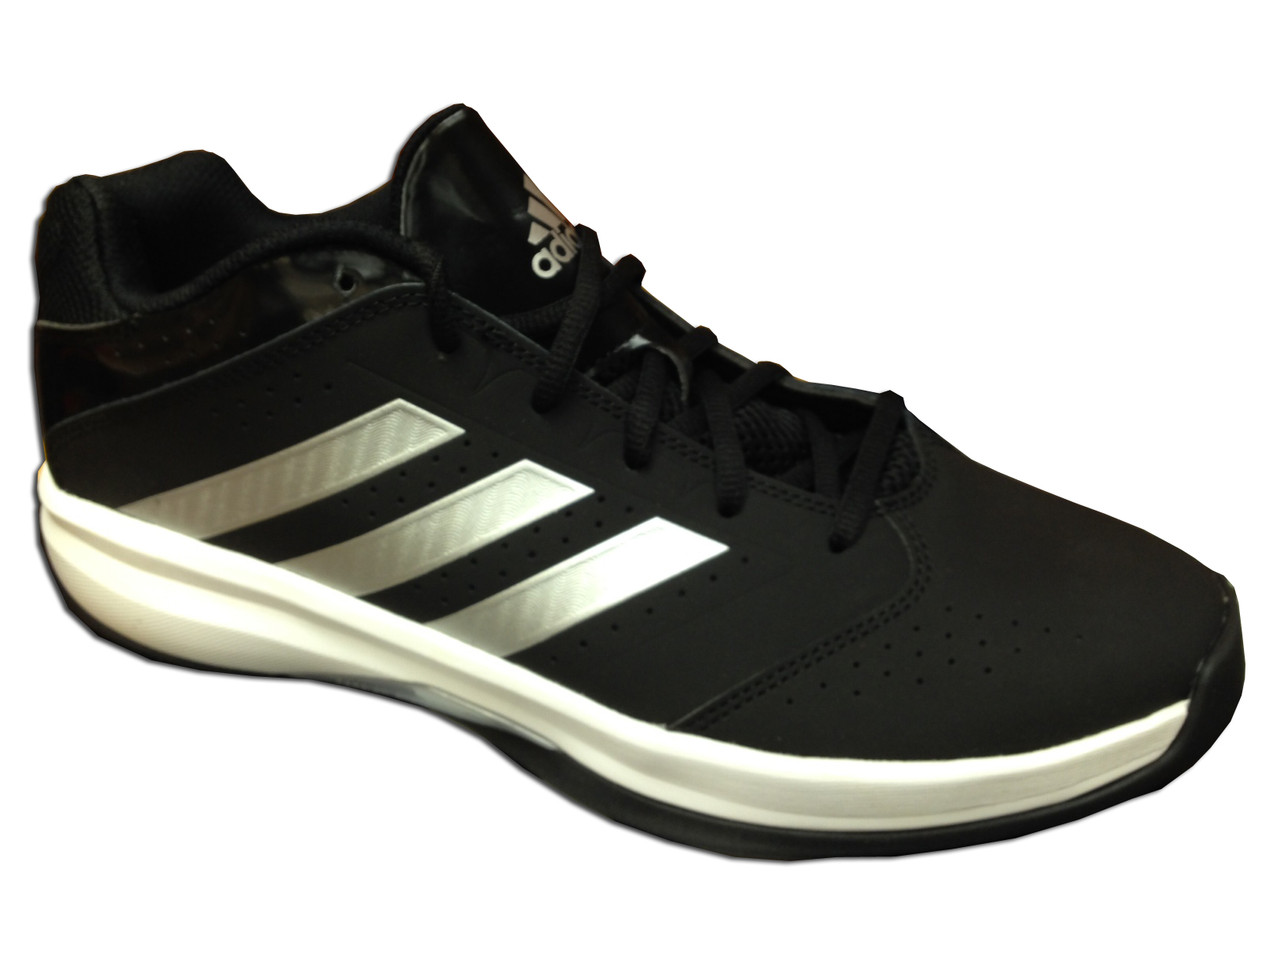 the latest 8178a 703b1 Adidas Men s Isolation 2 Low Basketball Shoes Black White - Shop now    Shoolu.